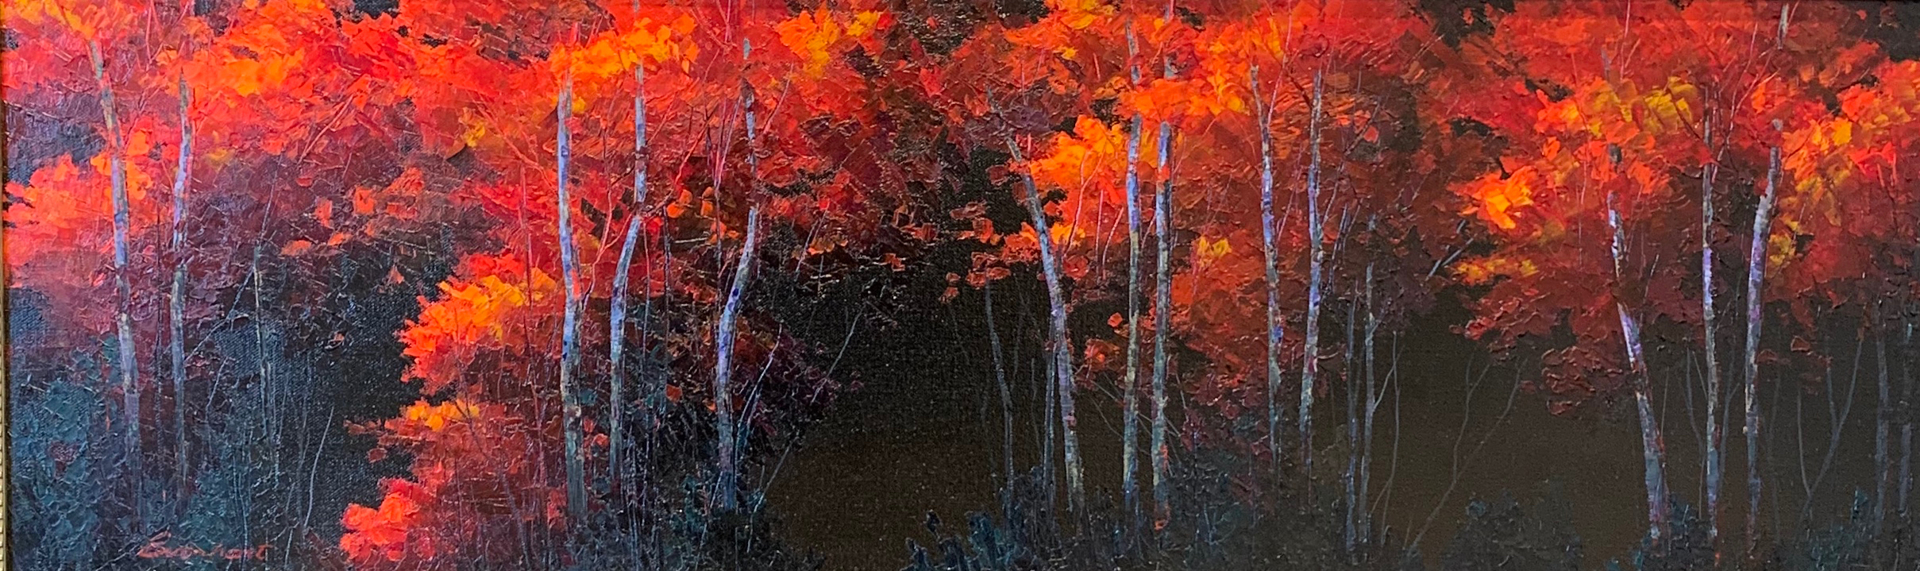 Illuminated Woods by Amy Everhart